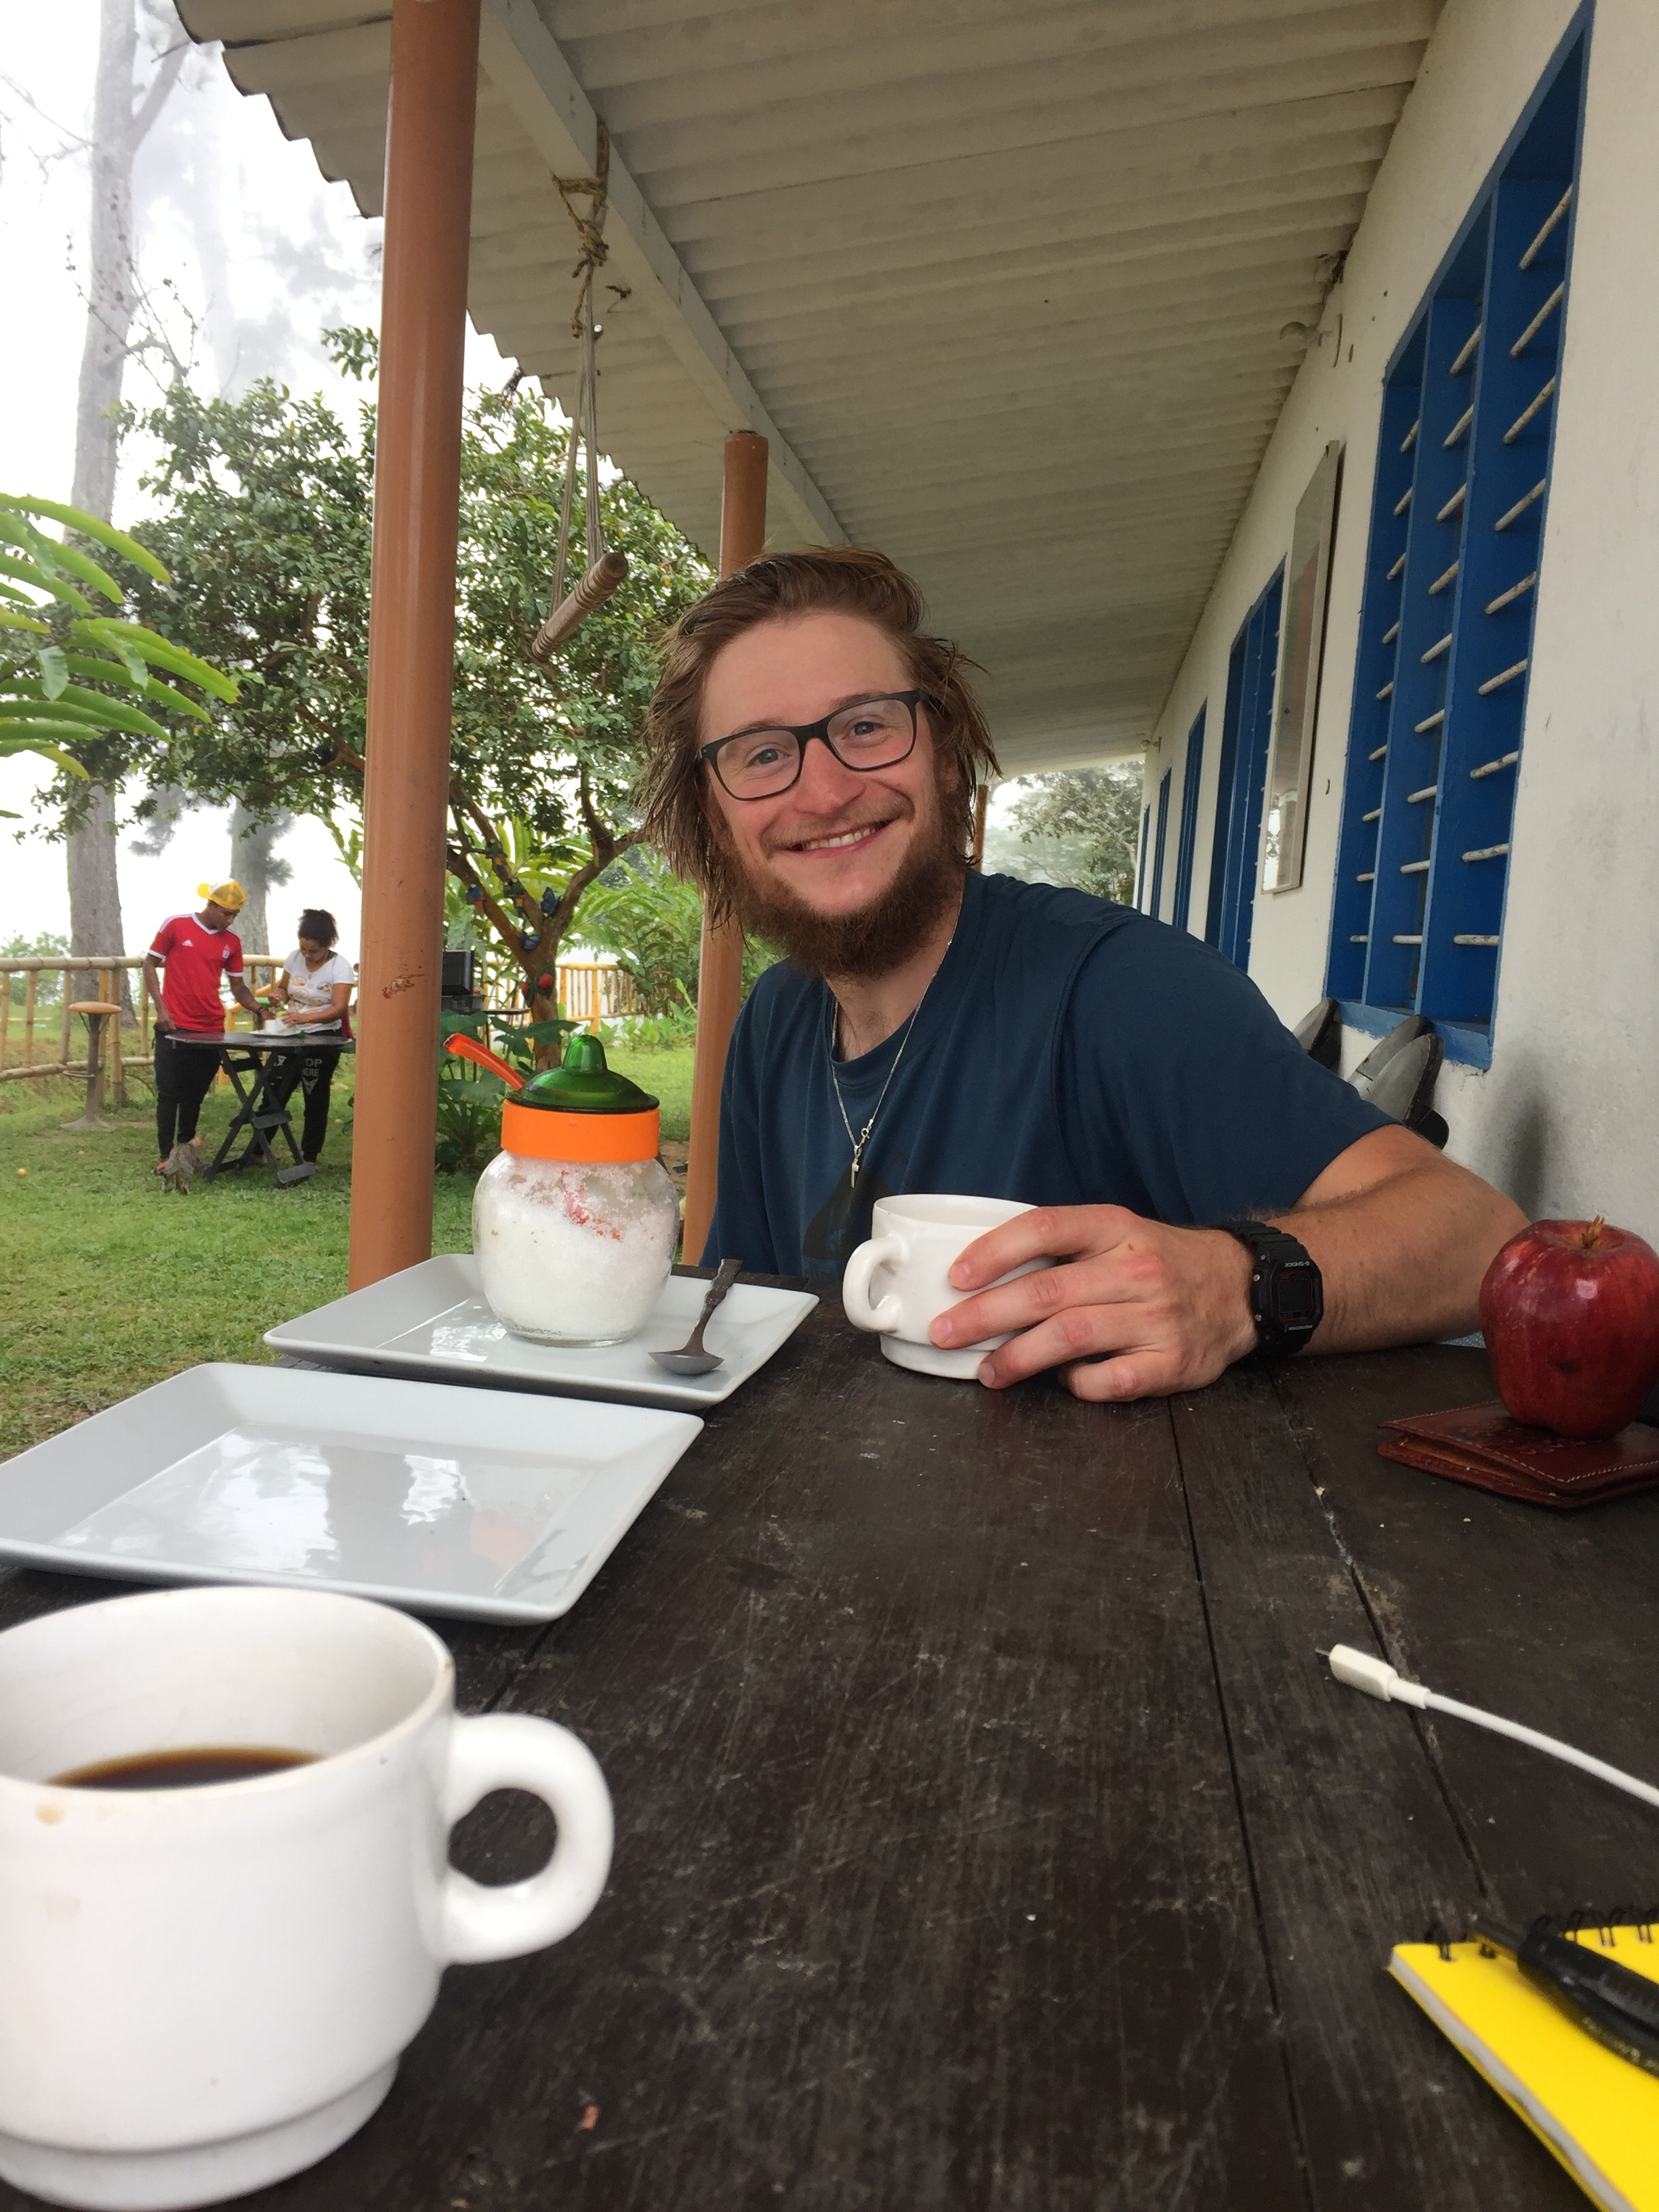 MINCA, COLOMBIA – JULY 26TH, 2017: My friend Bertie and I drink coffee at Hostel Los Pinos at the end of a 5 mile trek into the mountains. He was just one of the many charming people I met in Minca .